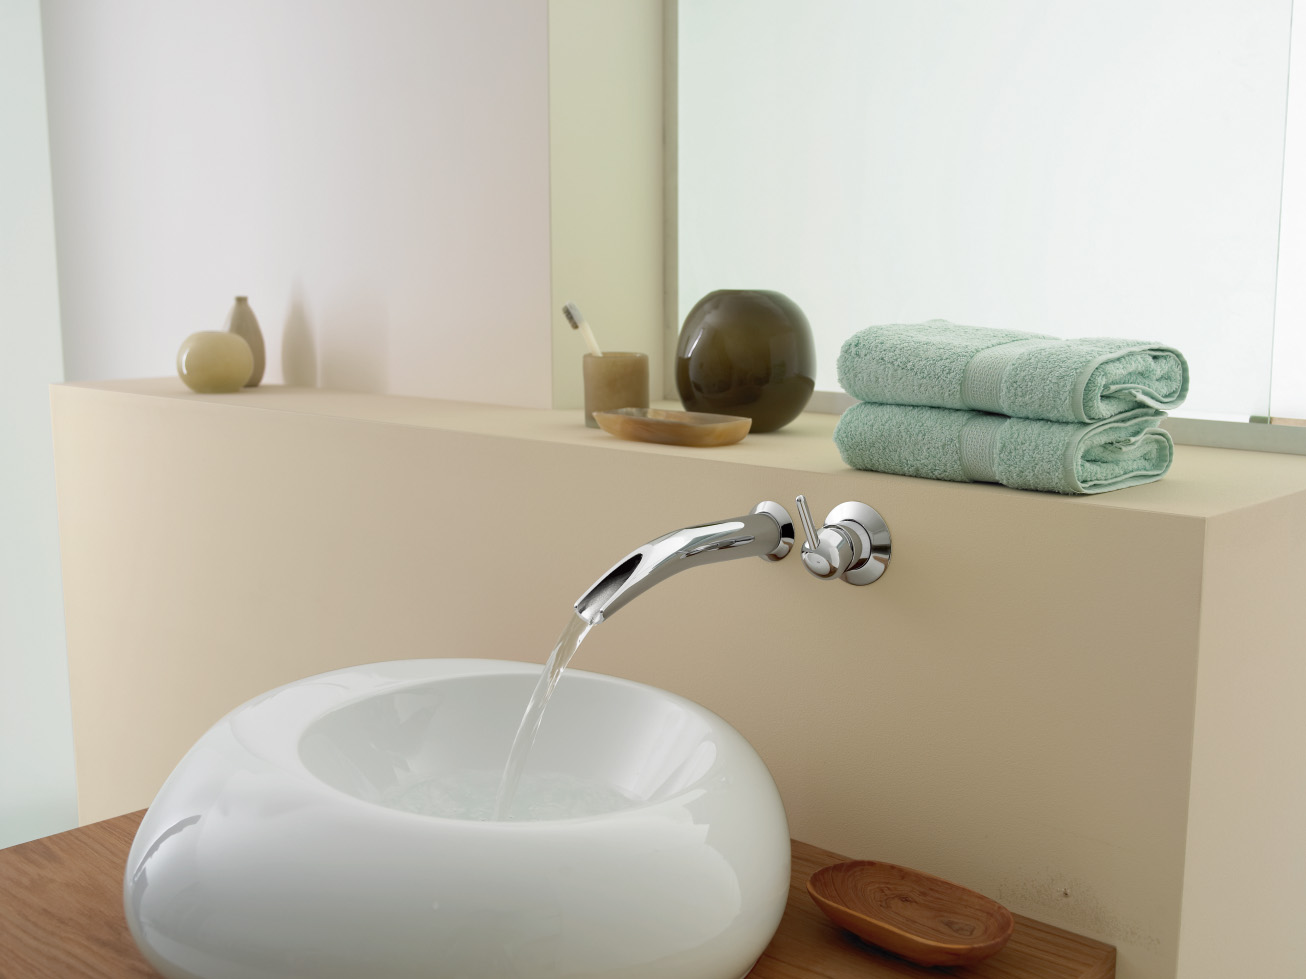 Villeroy & Boch - SOURCE flow